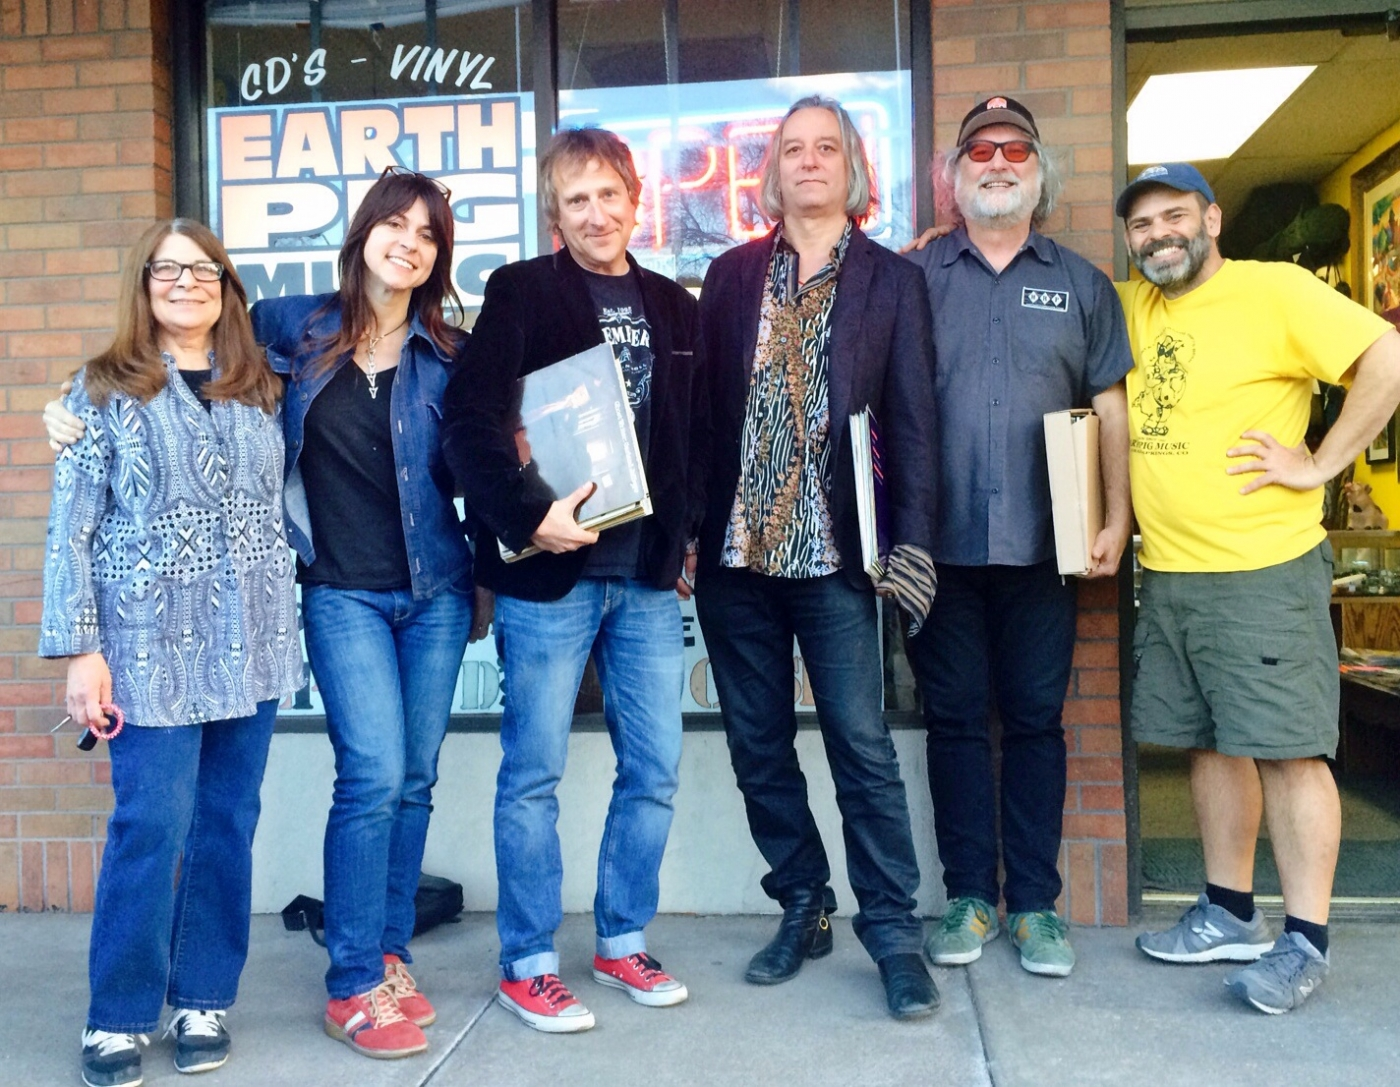 At Earth Pig Records, Colorado Springs. Photo by Tammy Shine